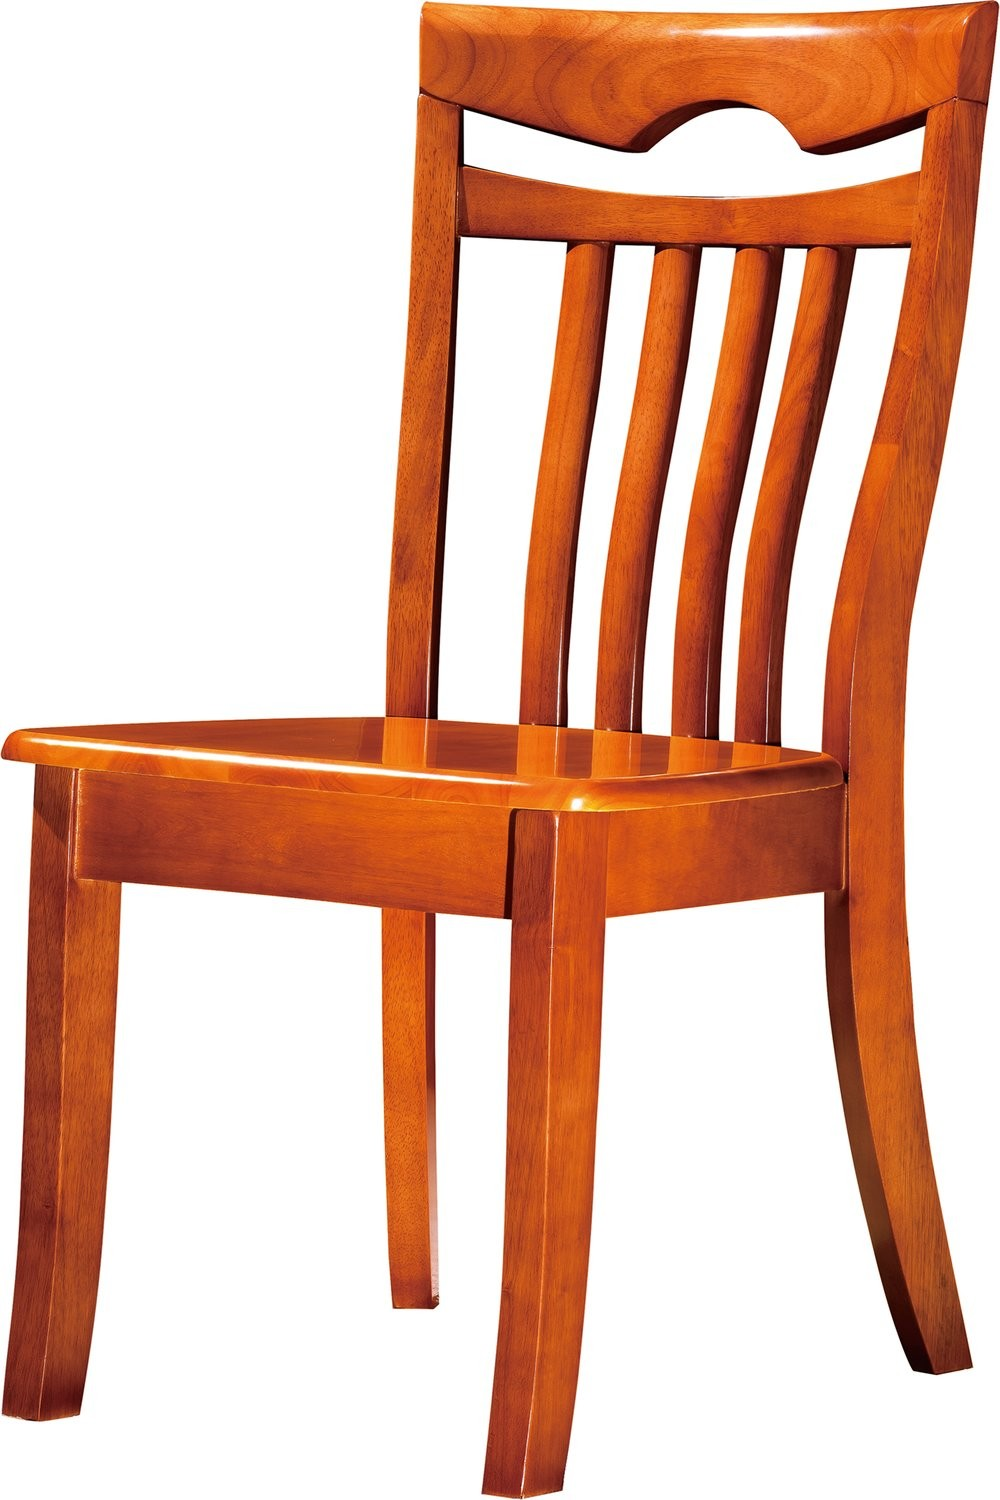 Classic Dining Chair Buy Wood Dining Chairs Product on  : UT8y0GmXA4XXXagOFbXc from www.alibaba.com size 1000 x 1500 jpeg 207kB